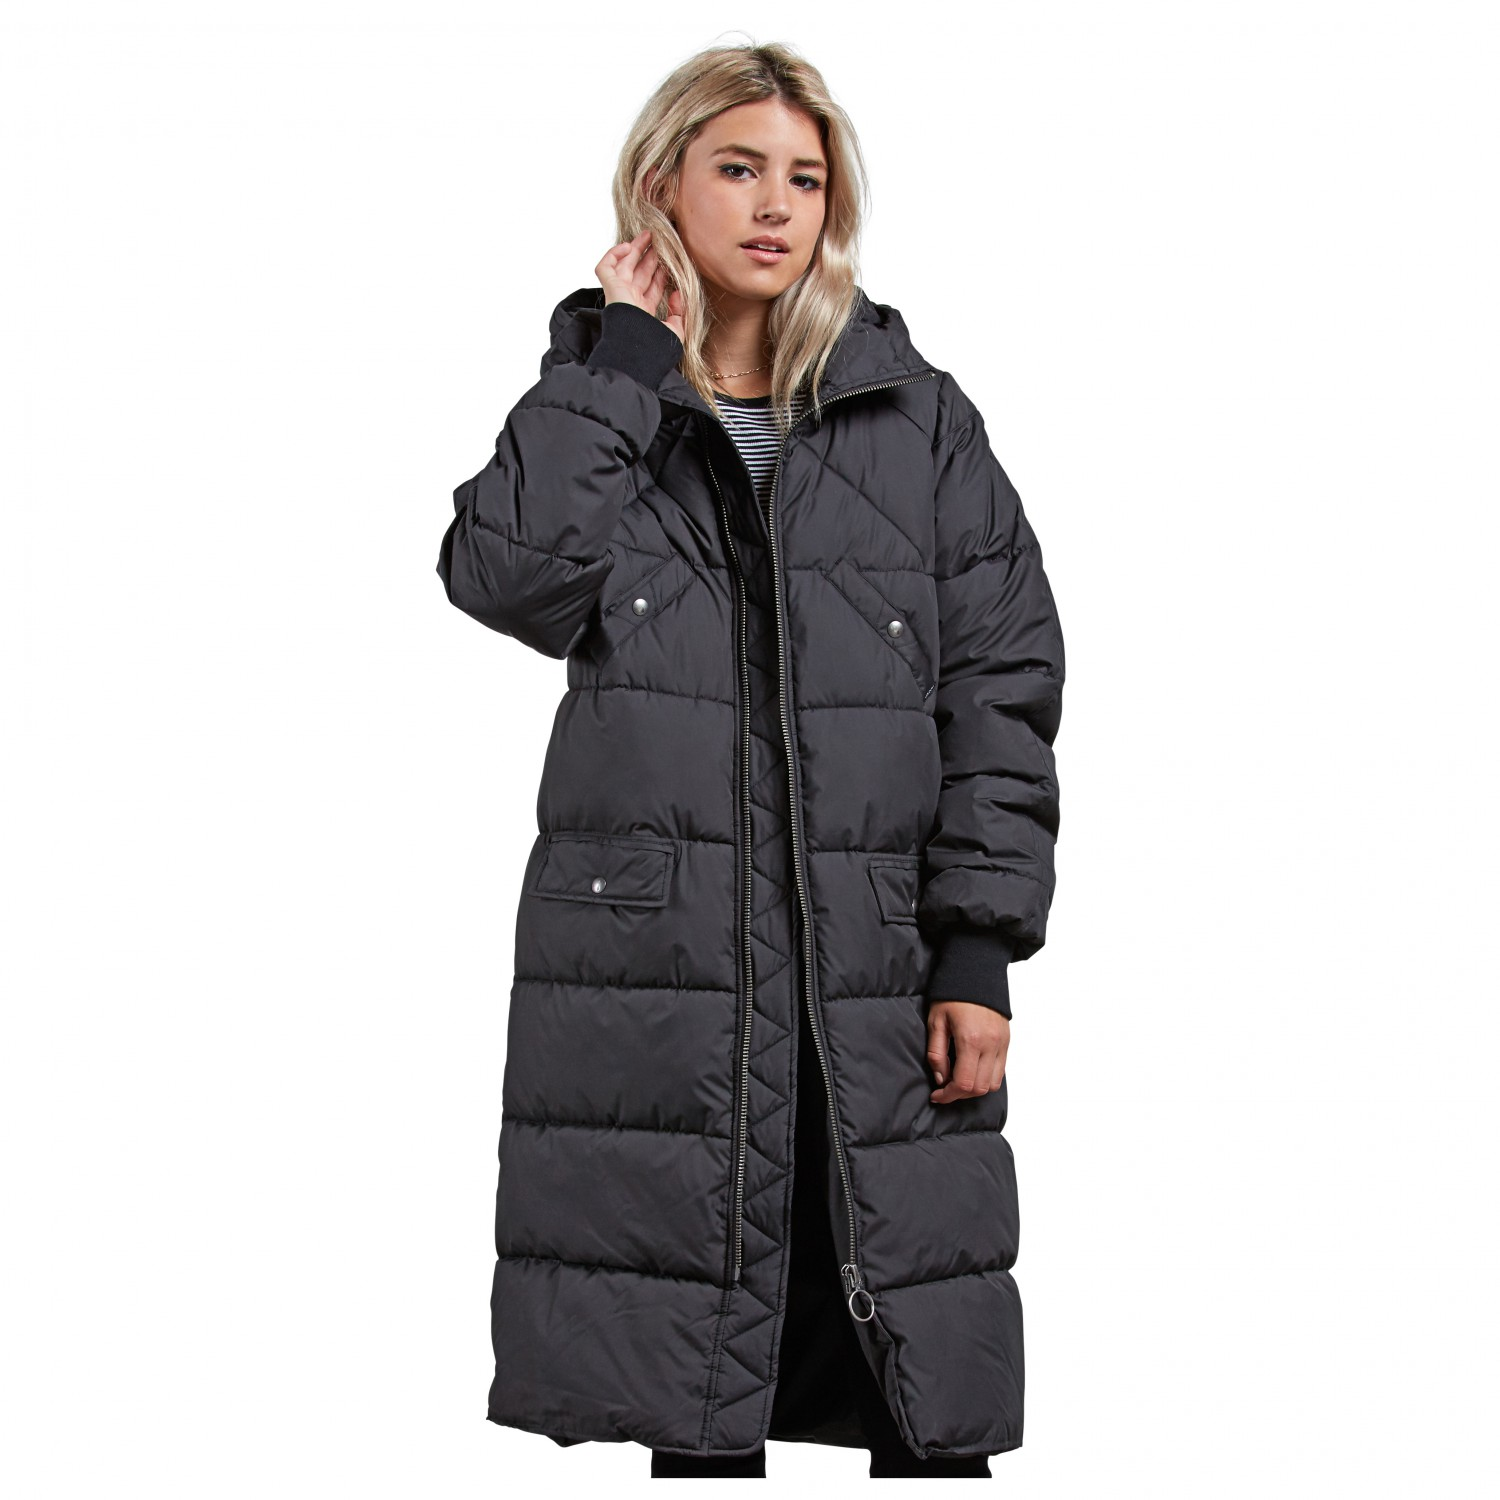 Women's Puffa Volcom Volcom In Chillax Women's EwqTx6qYv